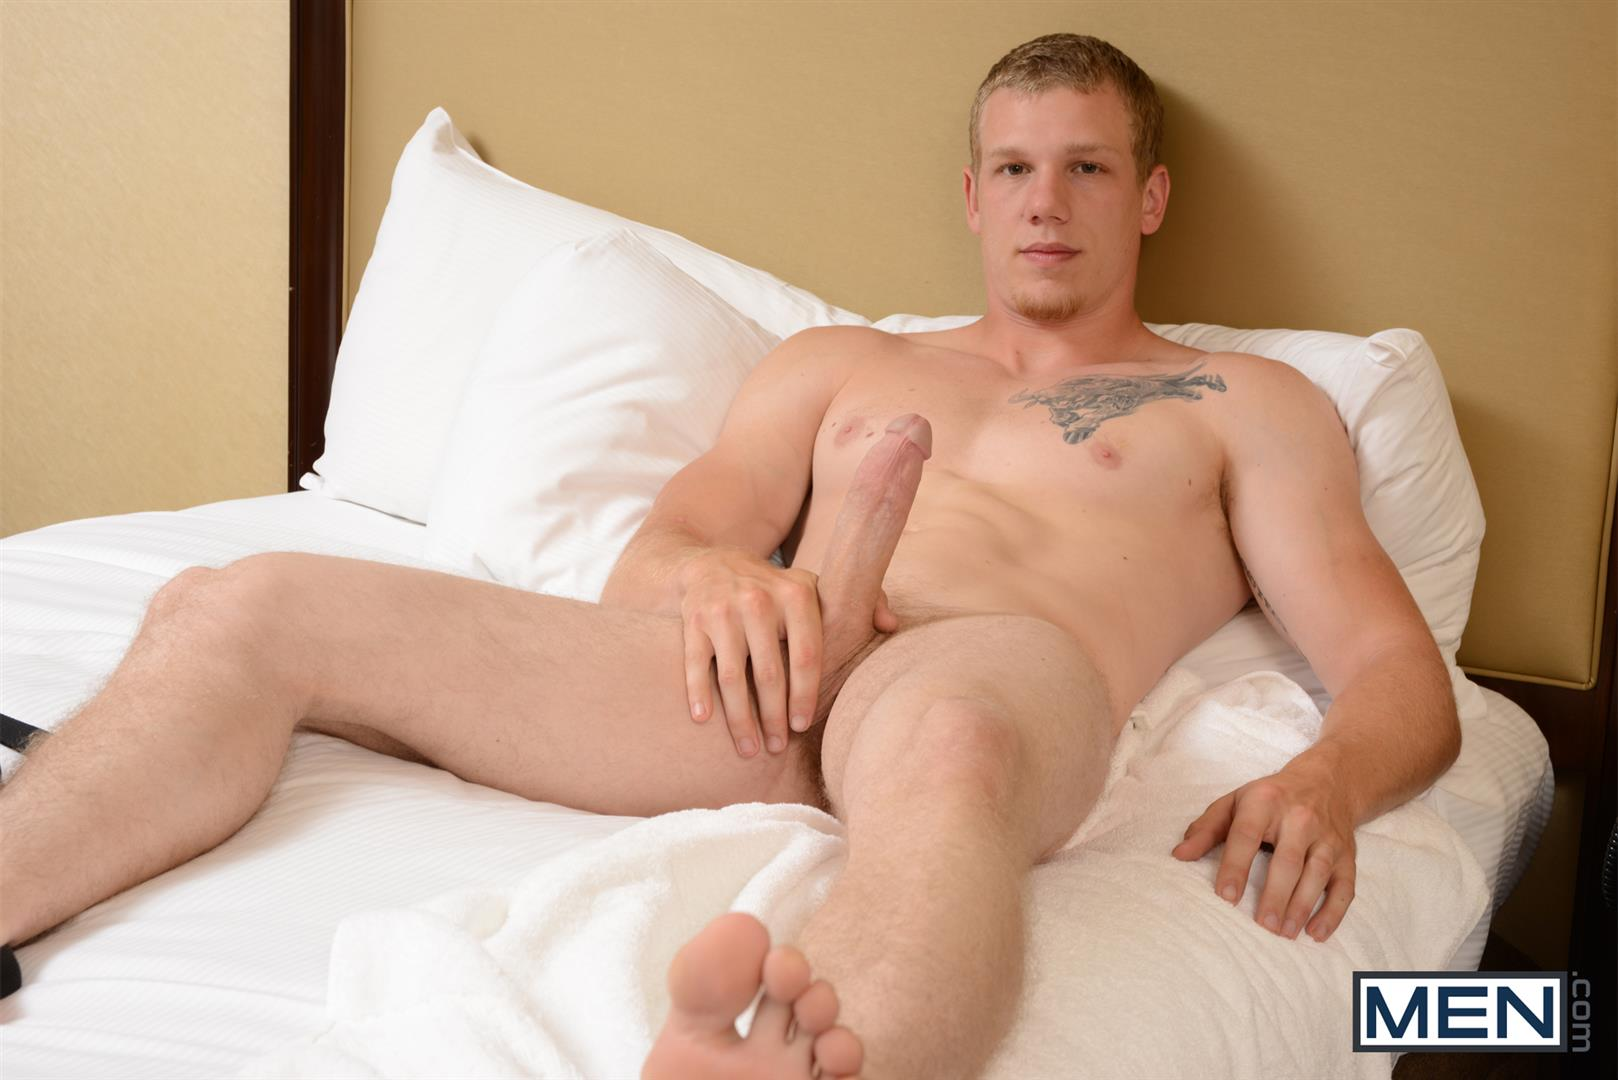 Men Str8 to Gay Johnny Forza and Mike Edge Fucking Big Cocks Amateur Gay Porn 07 Johnny Forza Gives Mike Edge A Hotel Hookup Hard Fucking